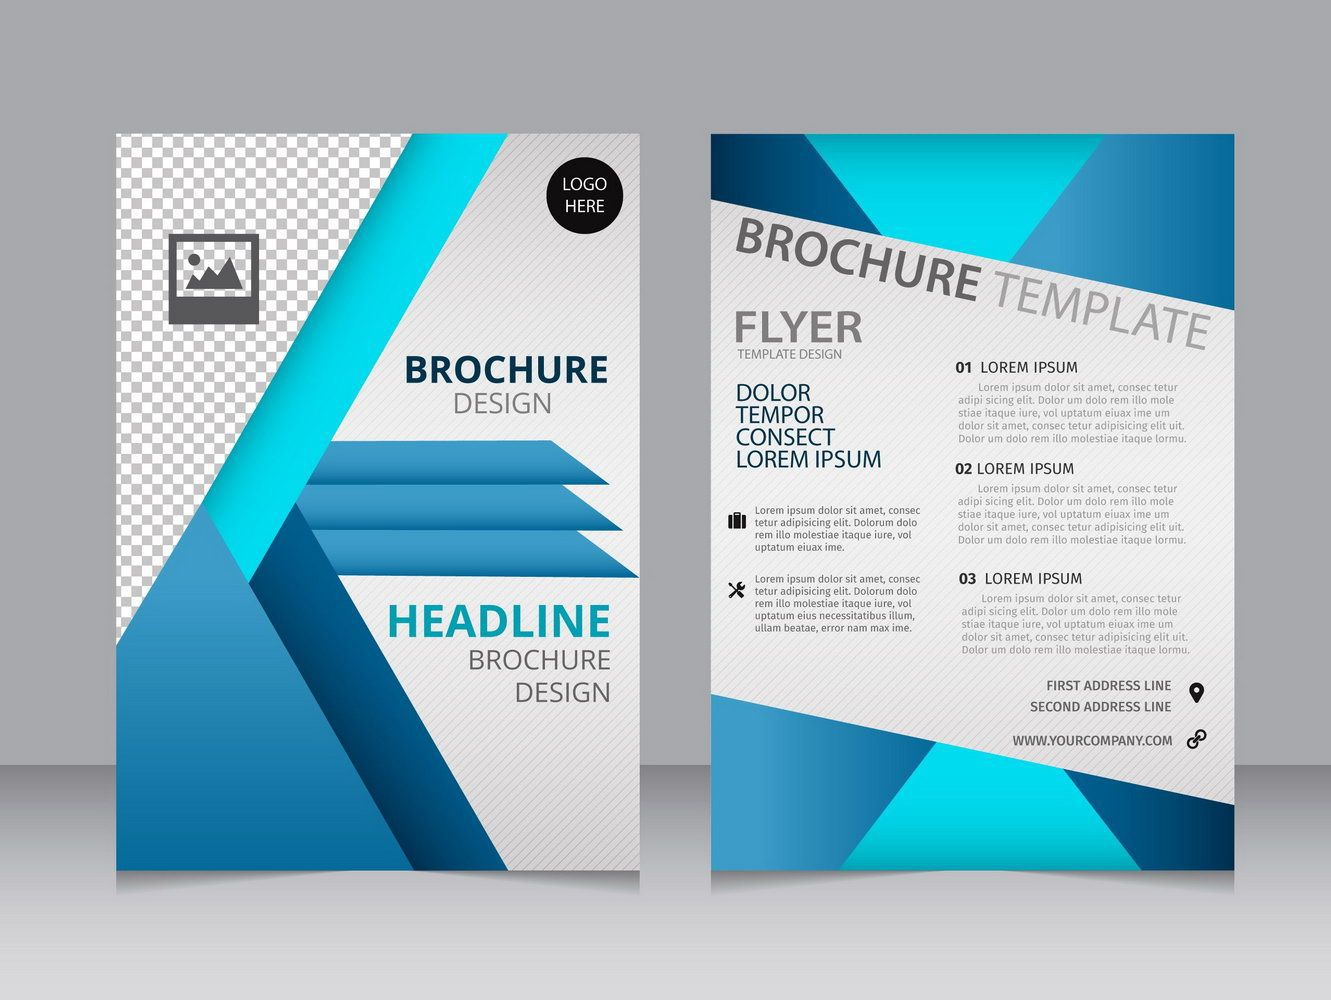 003 Awful Word Template Free Download Image  Simple Cv 2019Full